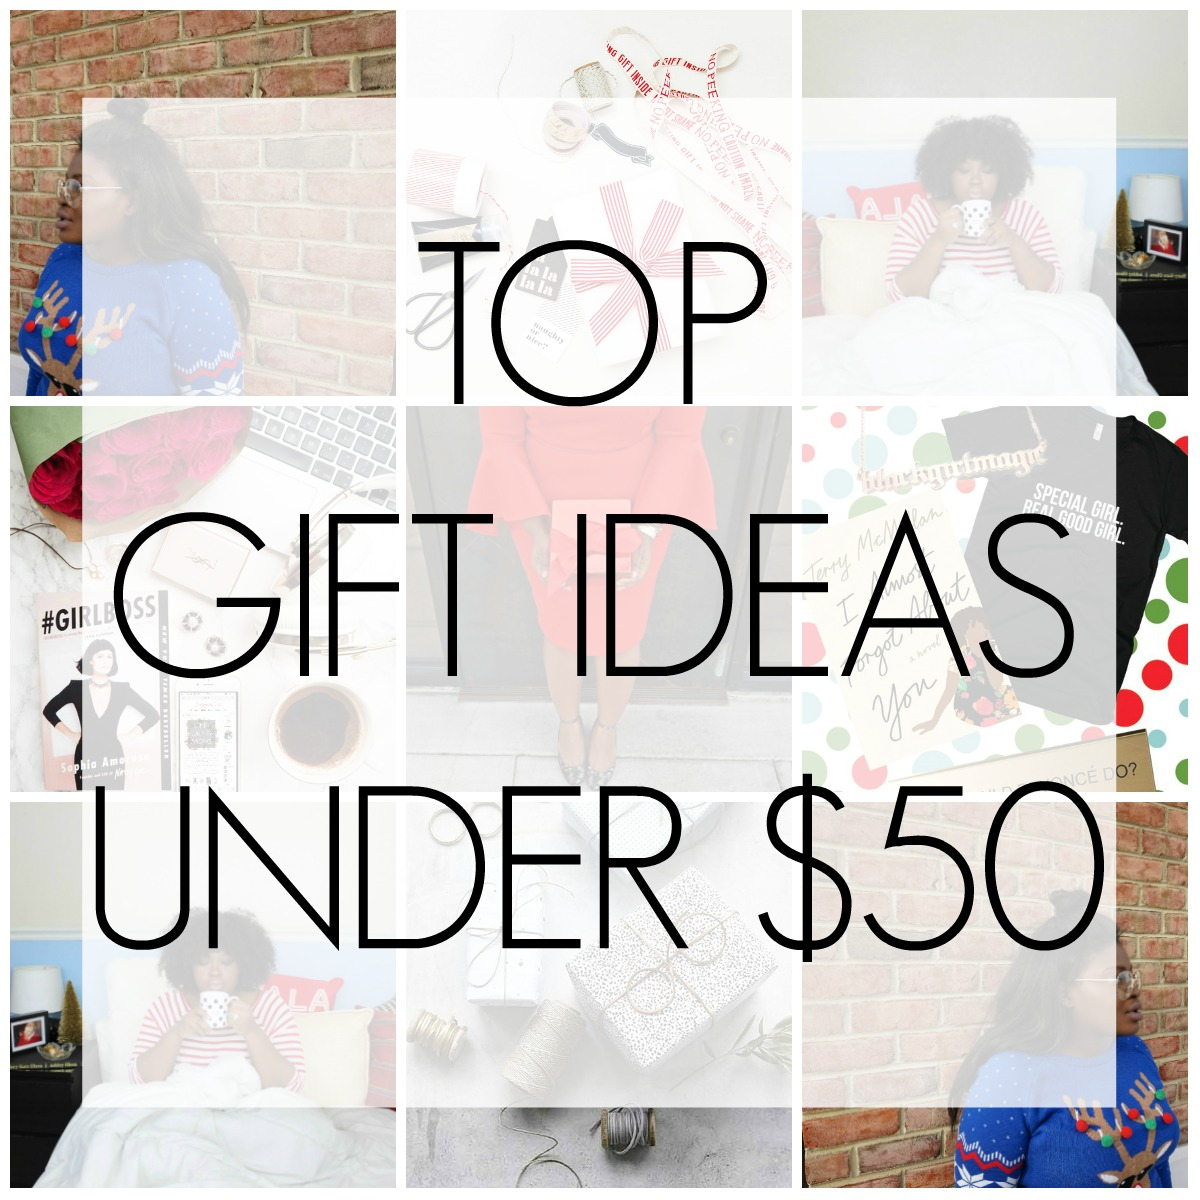 TOP GIFTS UNDER $50 + CYBER MONDAY DEALS